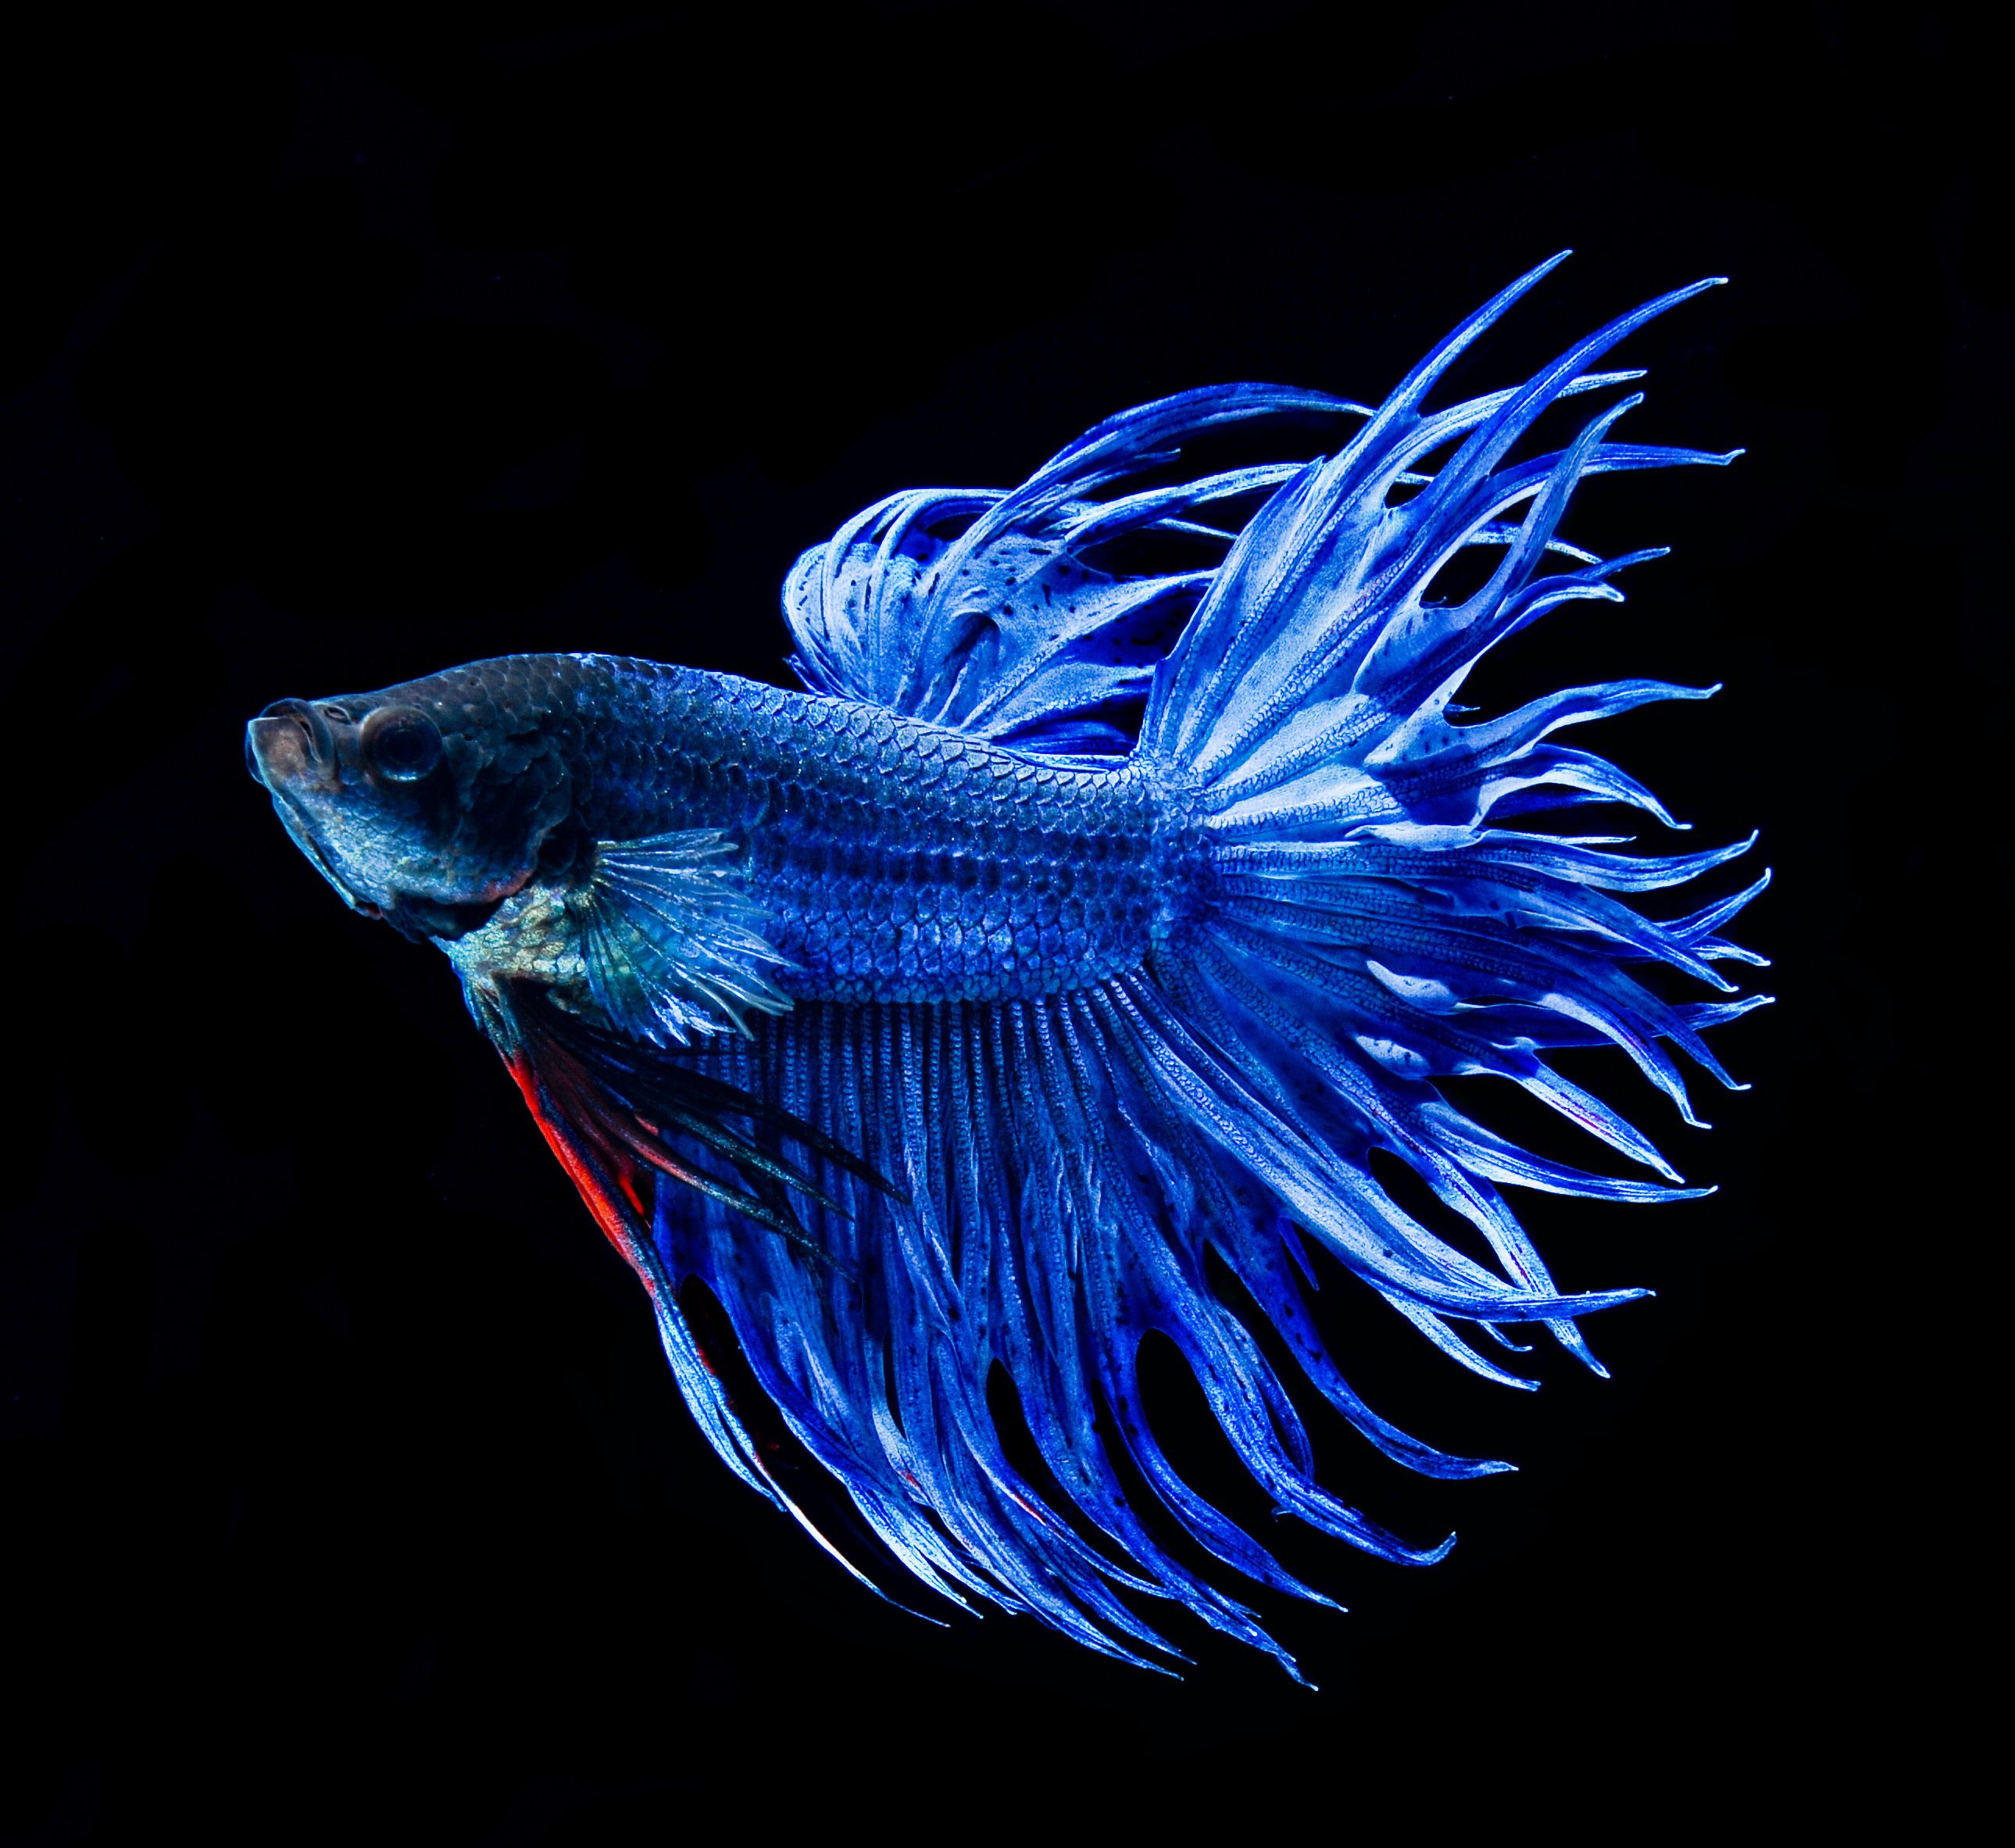 35 Different Types Of Betta Fish With Beautiful Pictures Fish Wallpaper Betta Fish Types Fish Wallpaper Iphone